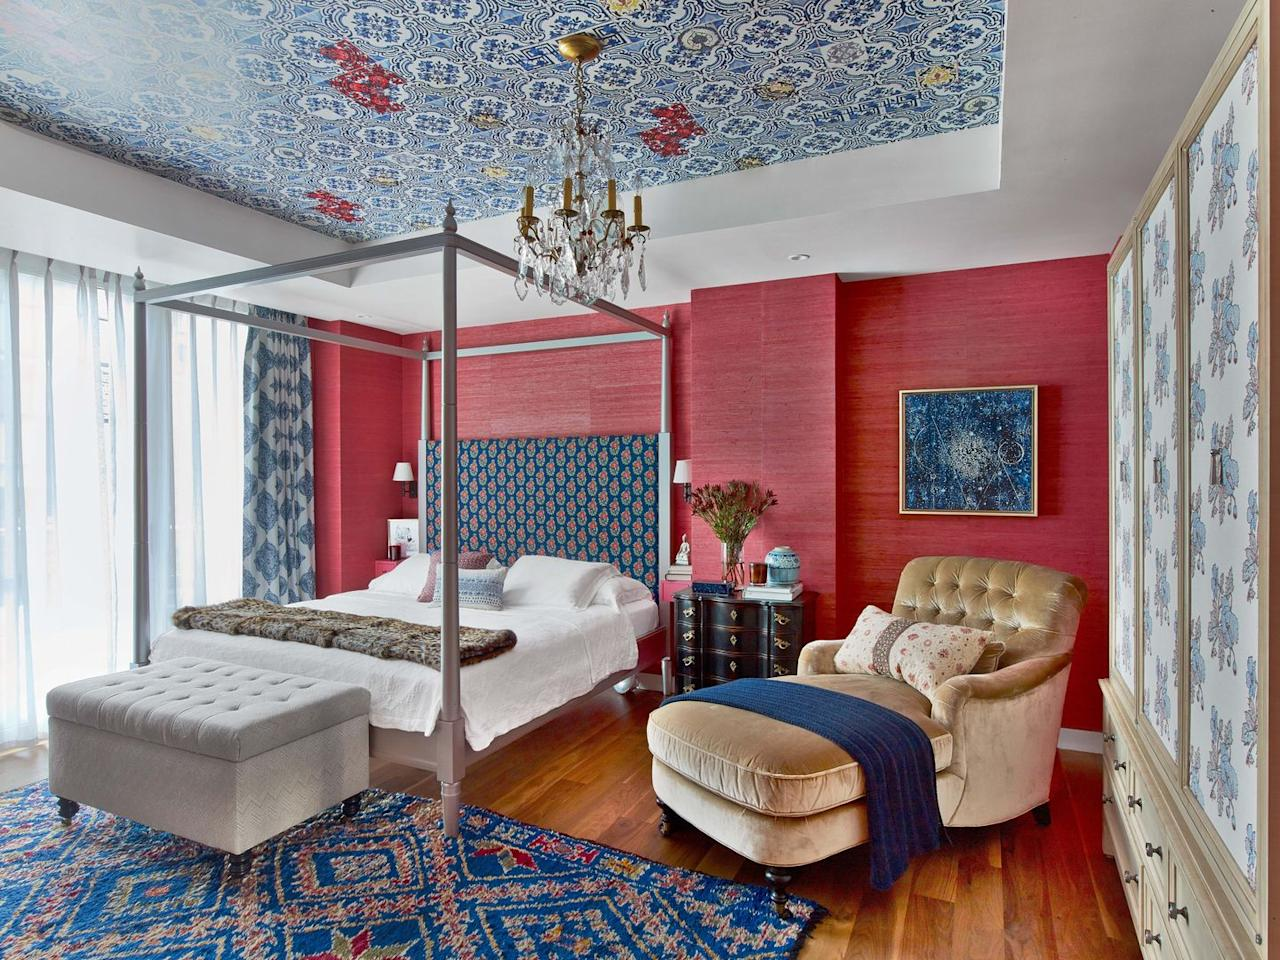 """<p>Colorful patterns and a vibrant grasscloth bring a sense of joy to this bedroom designed by <a href=""""https://www.chairish.com/shop/kati-curtis-design"""" target=""""_blank"""">Kati Curtis Design</a>.</p>"""